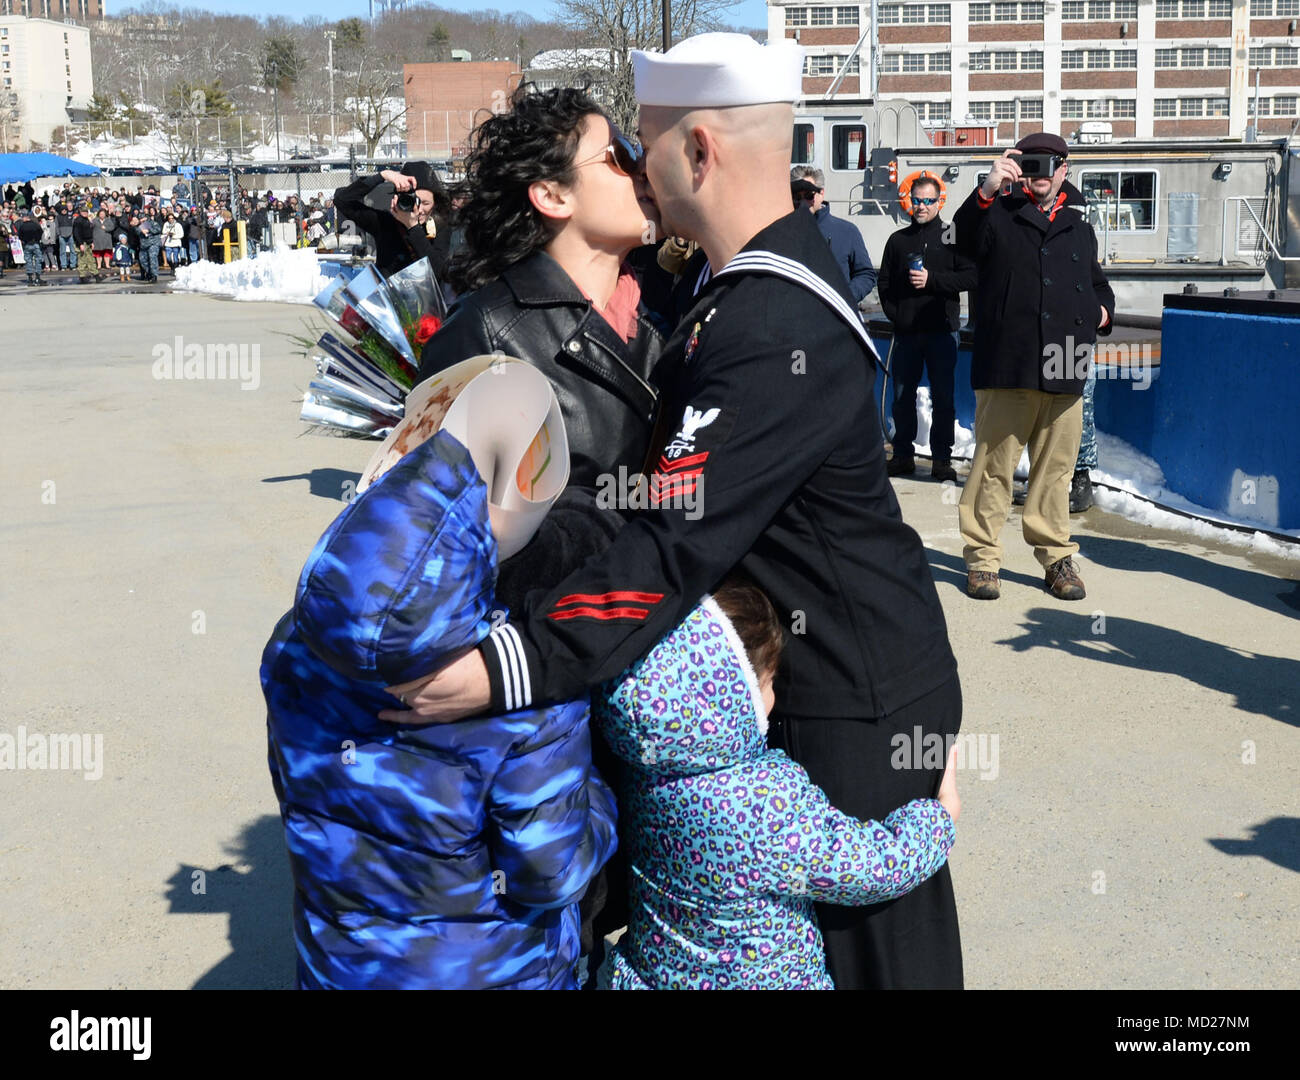 180314-N-LW591-013 GROTON, Conn. (Mar. 14, 2018) Sonar Technician Submarine 1st Class Michael Acosta is greeted by his wife, Ilvia Acosta with the traditional first kiss as his kids embrace him with hugs during a homecoming celebration for the Virginia-class, nuclear-powered, fast-attack submarine, USS Minnesota (SSN-783), on Naval Submarine Base, New London in Groton, Conn., on Wednesday 14, Mar. Minnesota is returning from the European Command Area of Responsibility where they executed the Chief of Naval Operation's Maritime Strategy in supporting national security interests and Maritime Sec - Stock Image